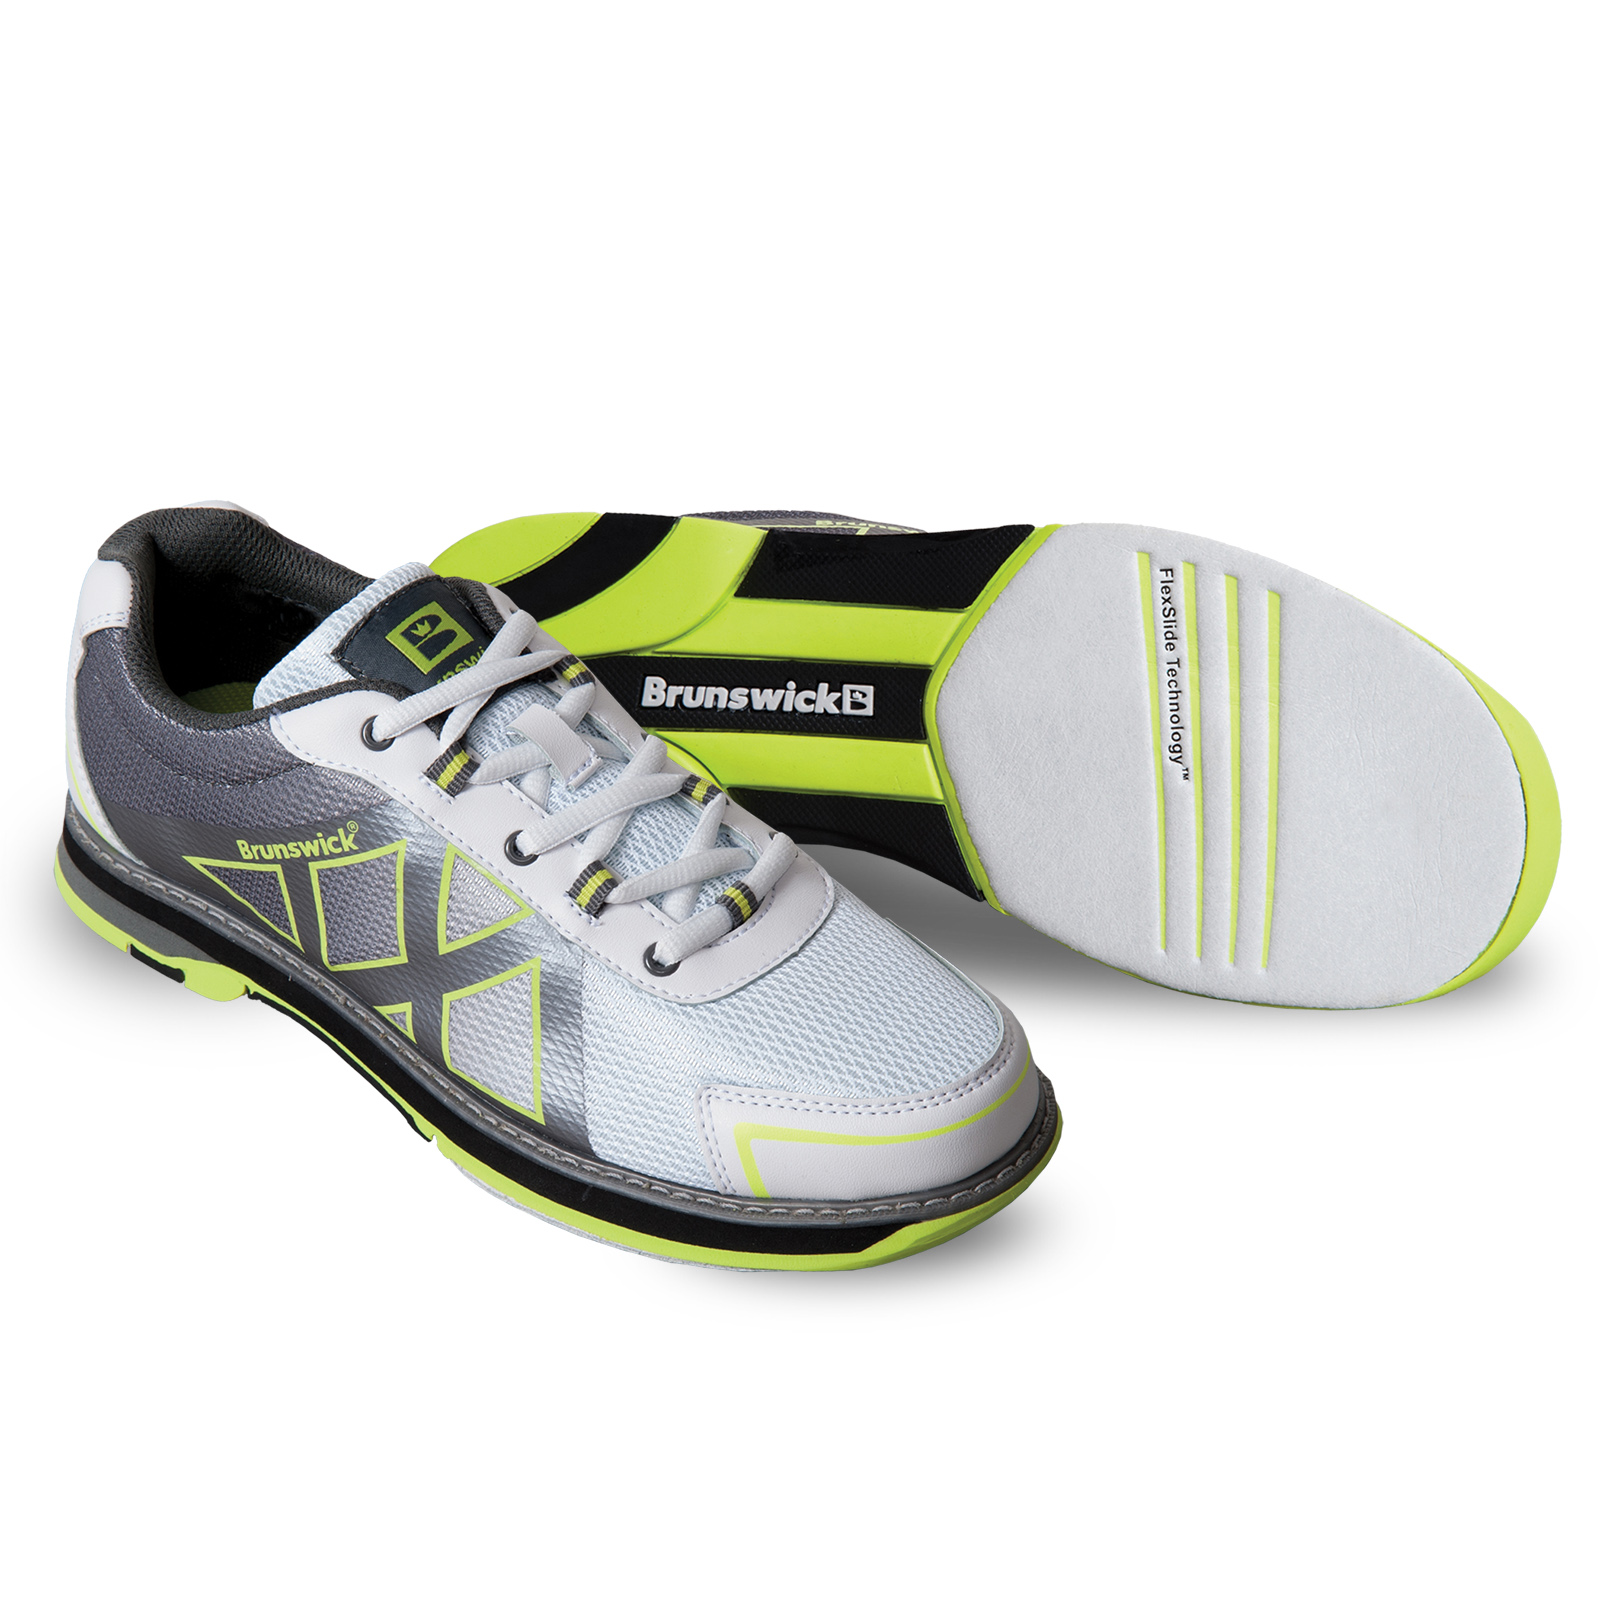 Brunswick Womens Kross White Grey Yellow - Fitness & Sports Team Bowling Shoes